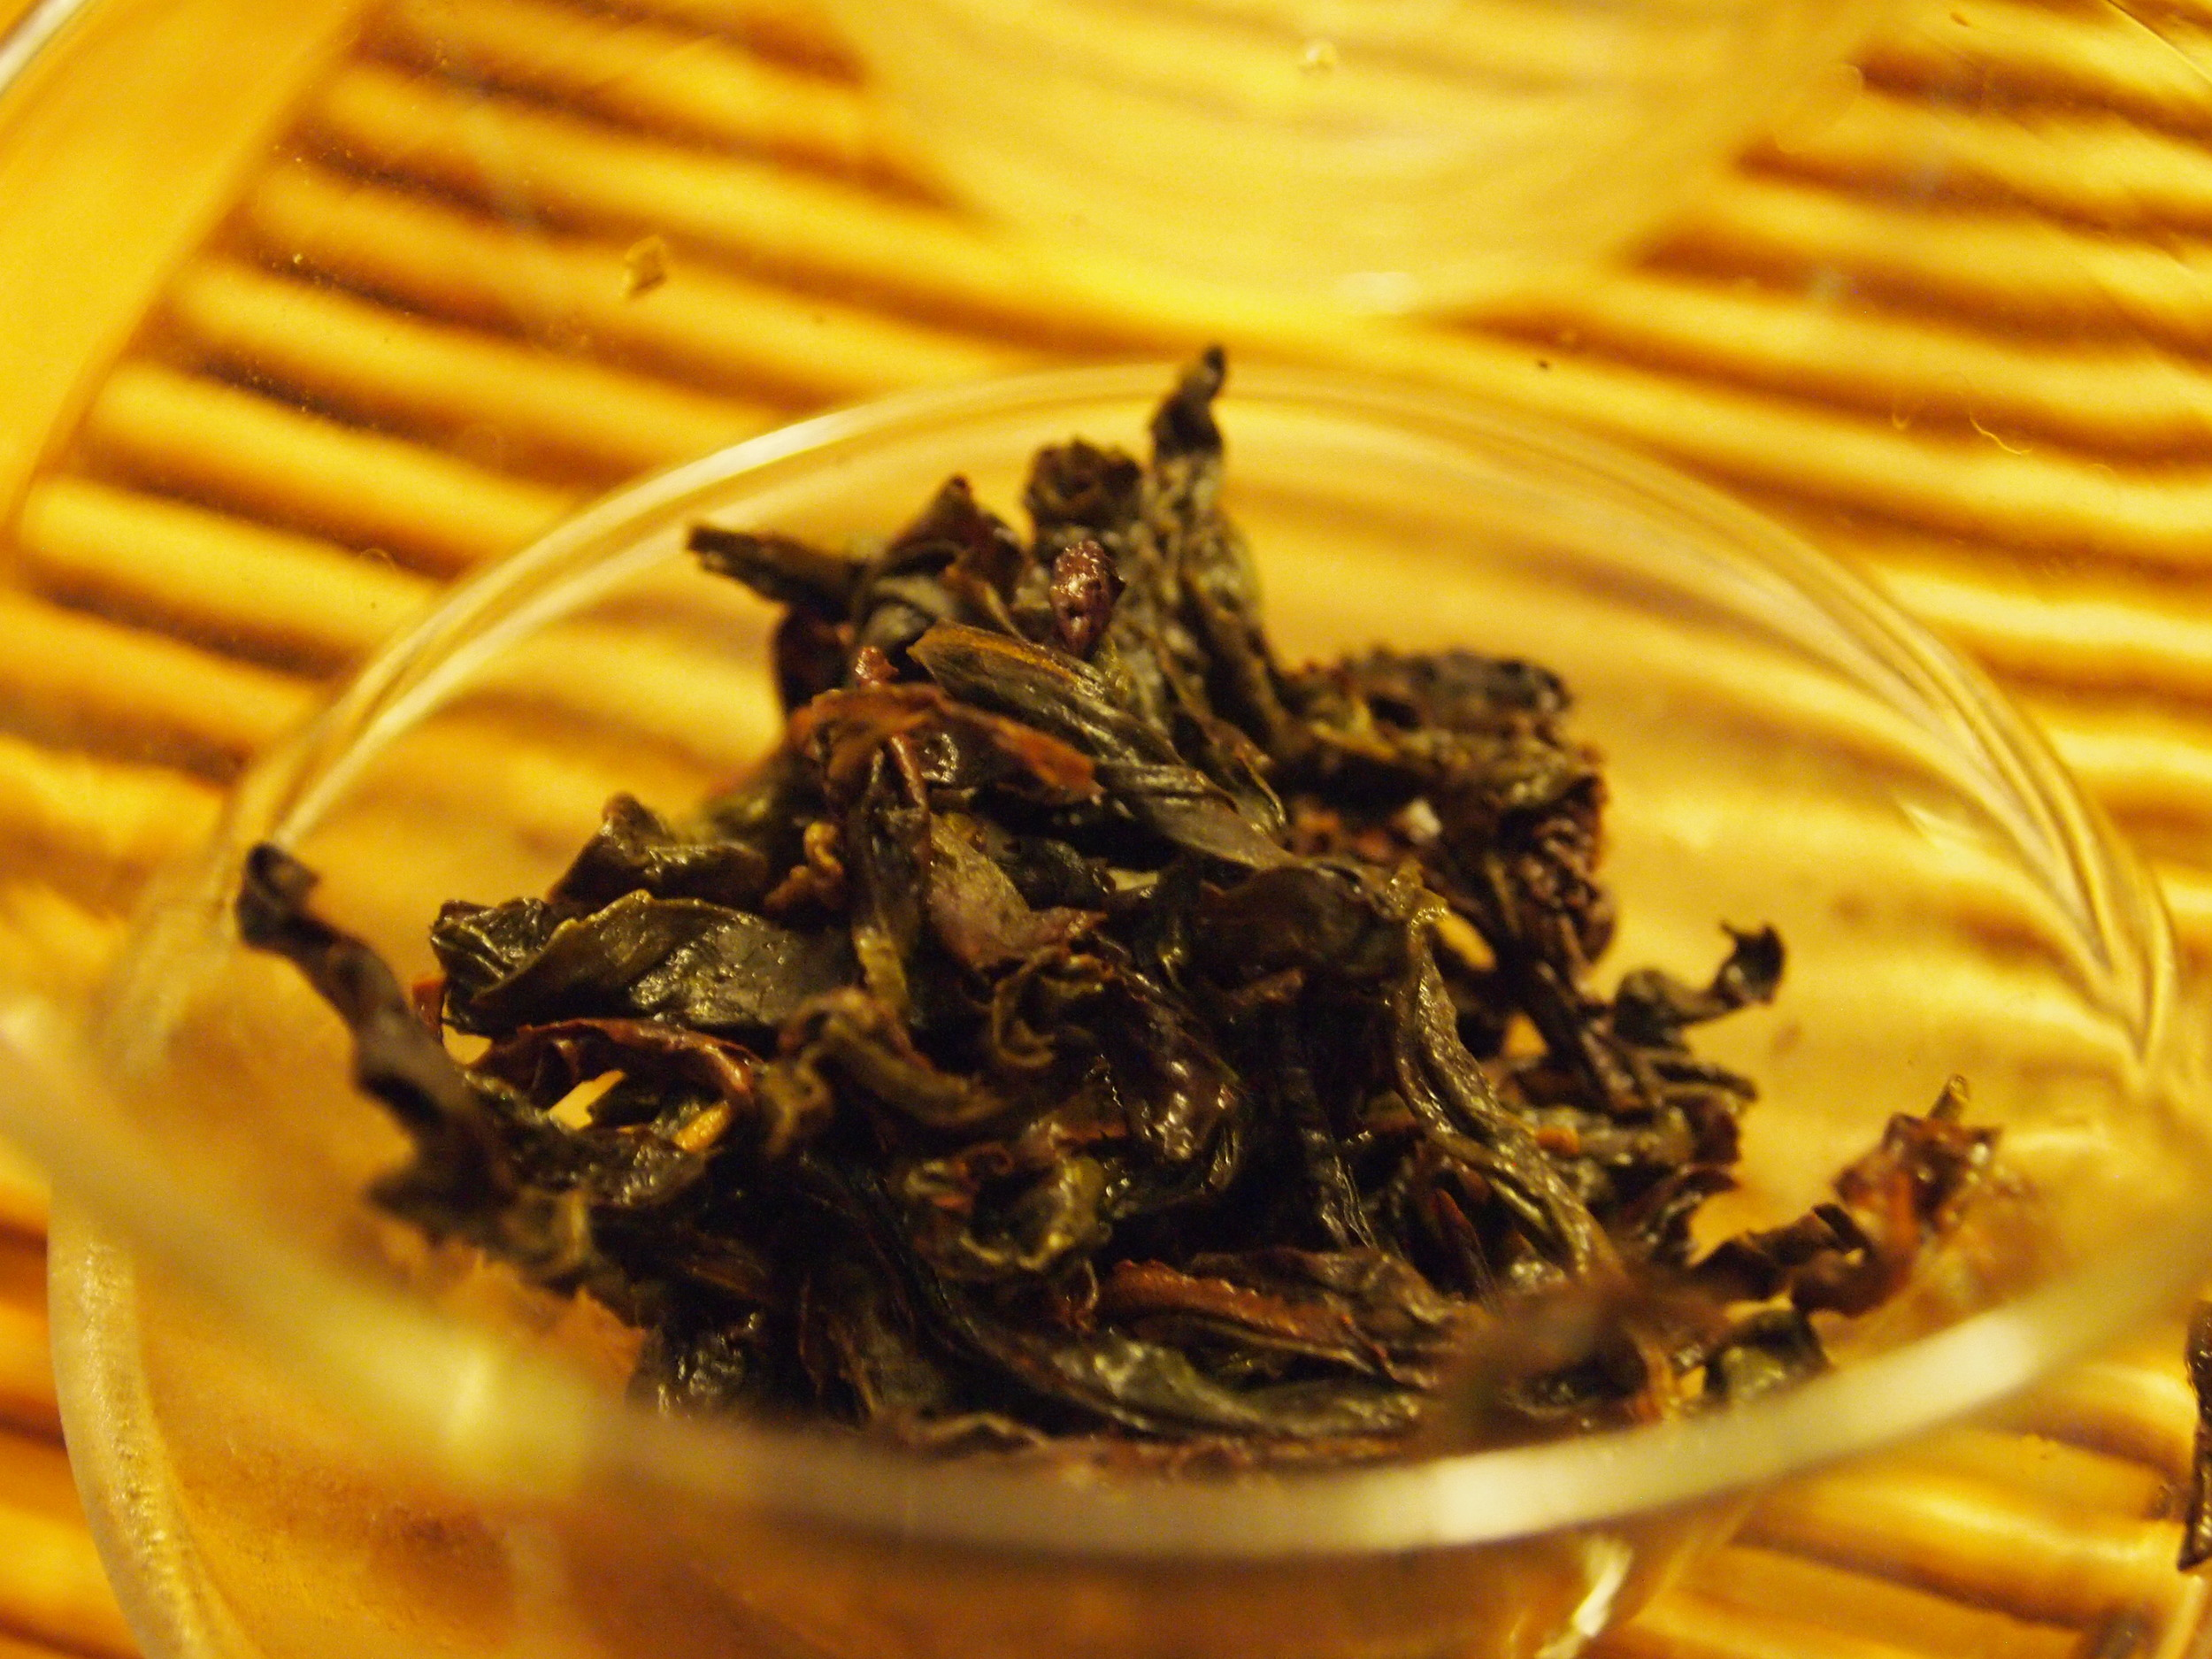 Here is the Shui Xian leaves after a quick rinse. It opened up the tightly twisted leaves without wasting a good infusion.